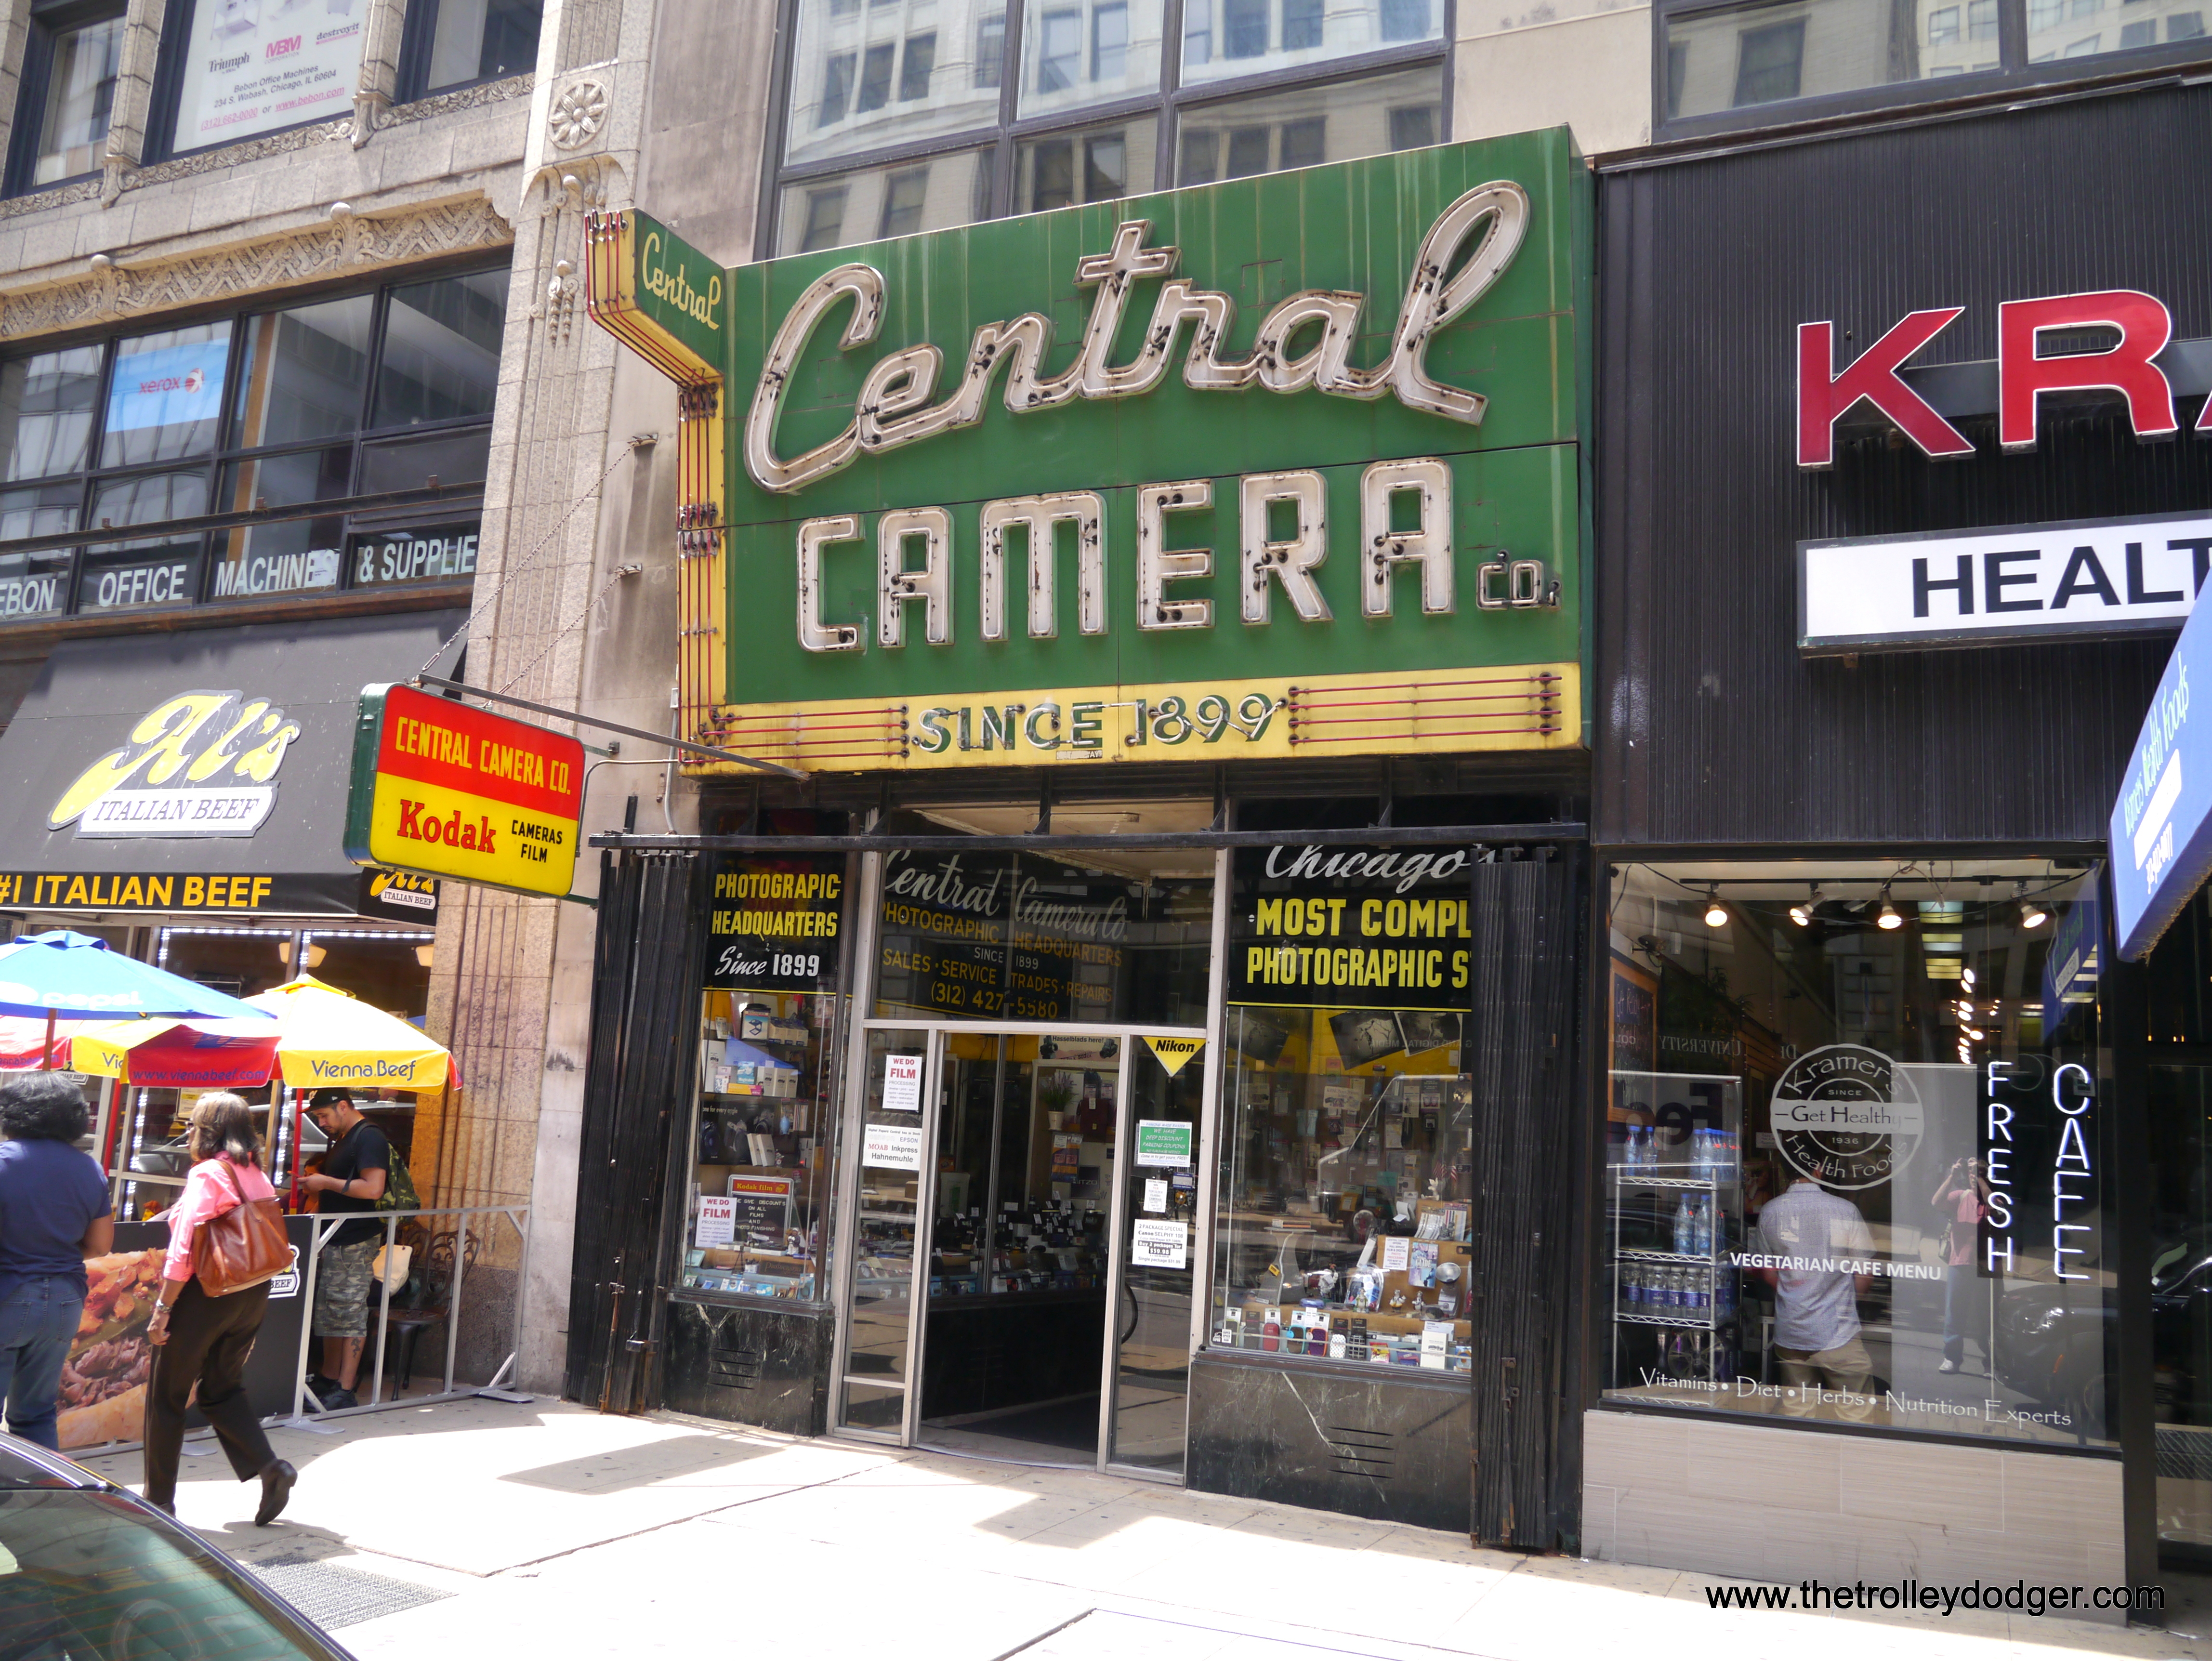 Railfans, Their Cameras, and Camera Stores – The Trolley Dodger